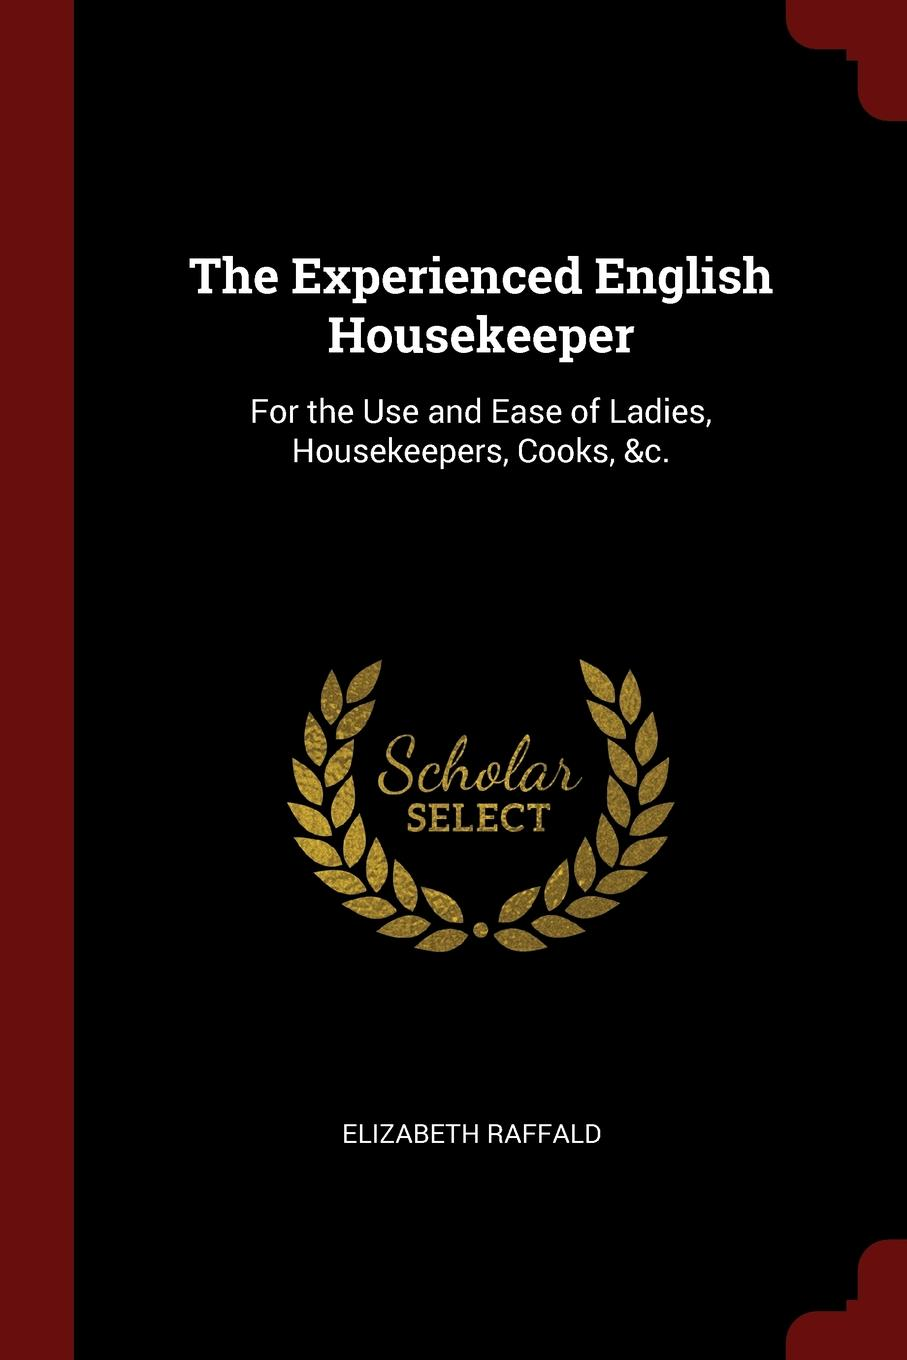 Elizabeth Raffald The Experienced English Housekeeper. For the Use and Ease of Ladies, Housekeepers, Cooks, .c.